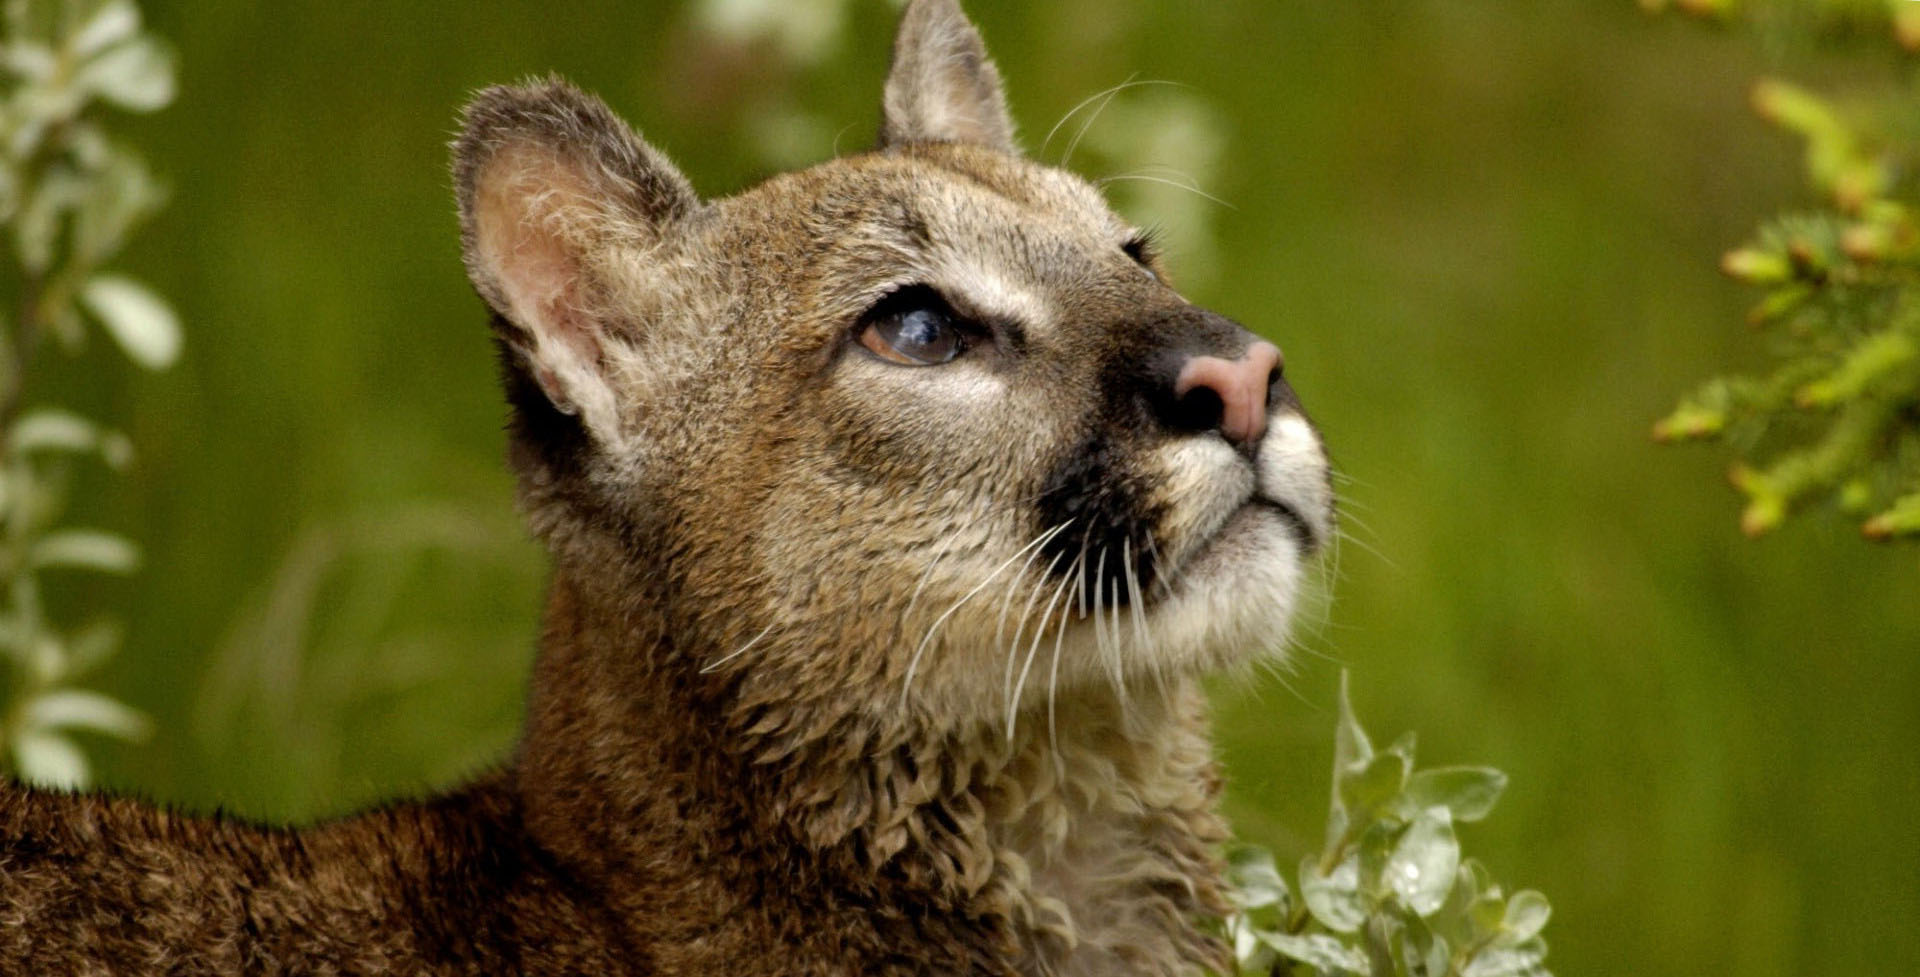 Wallpaper Hd For Desktop Full Screen Cute Baby A Cougars At The Montana Wallpapers Hd Desktop And